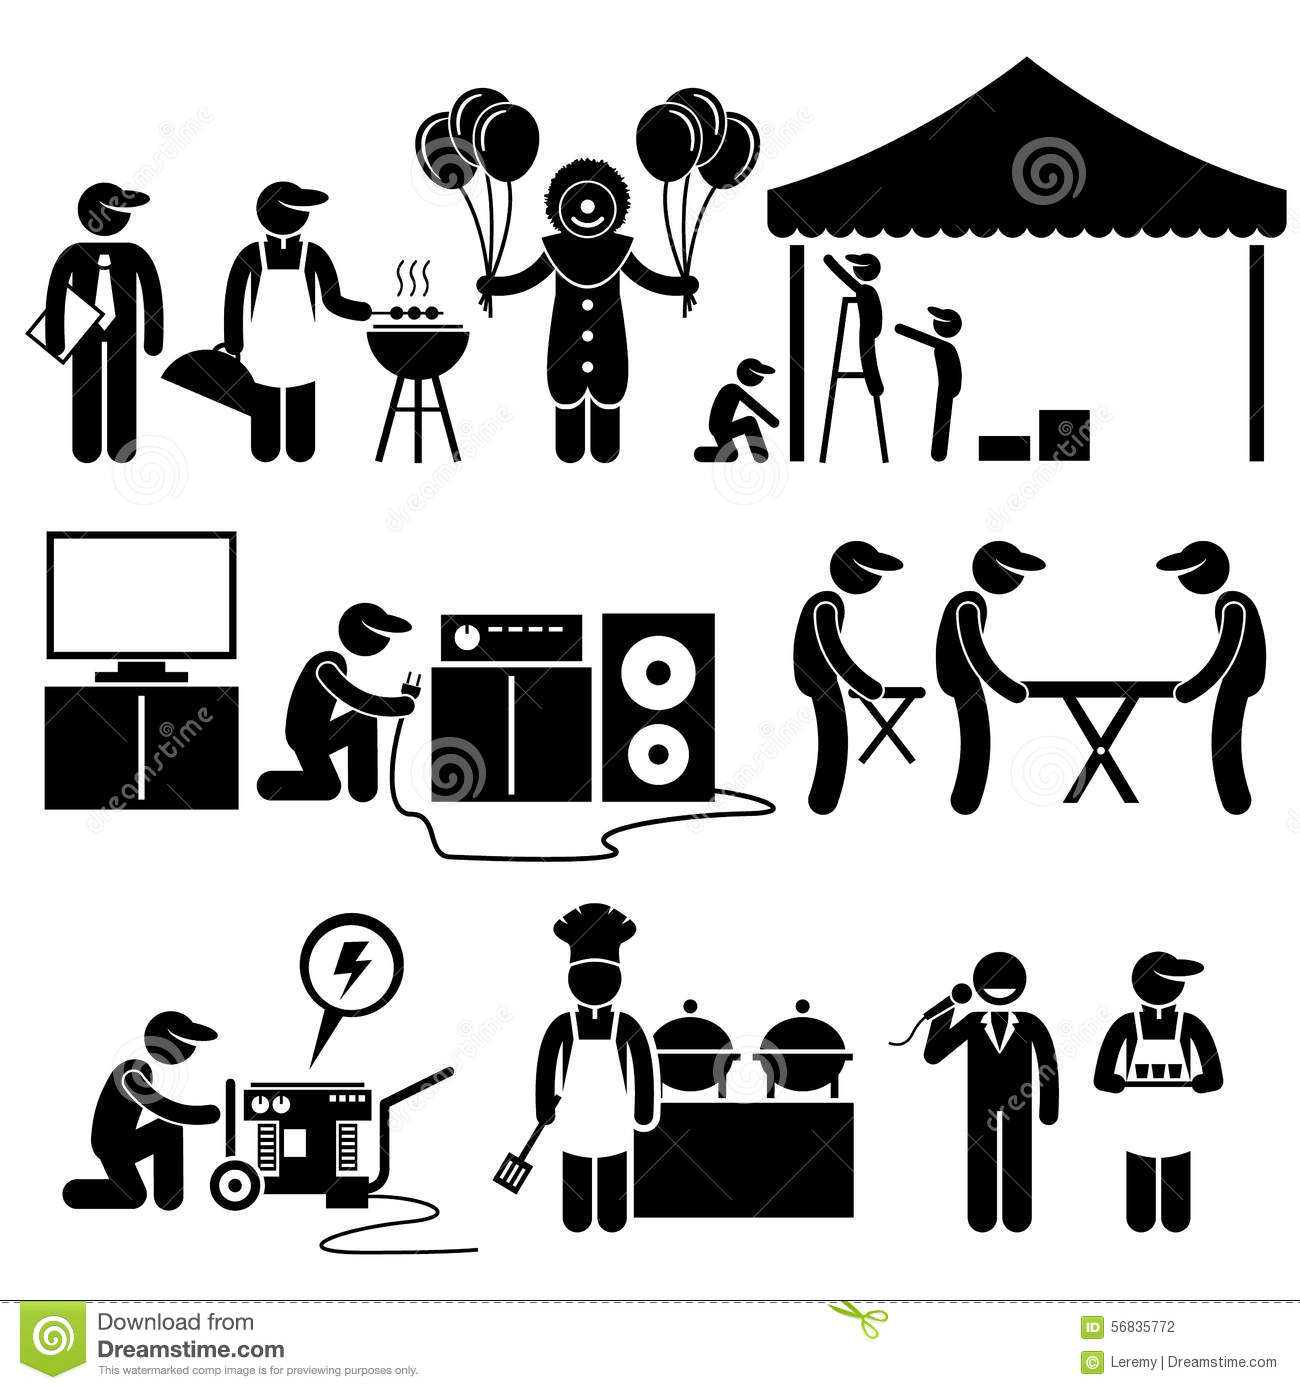 Sause 20clipart 20black 20and 20white also Barbecue bbq charcoal garden grill party picnic icon likewise Stock Illustration Vector Icon Palm Tree additionally Bbq Ribs Clipart Black And White additionally Meat head. on bbq clip art